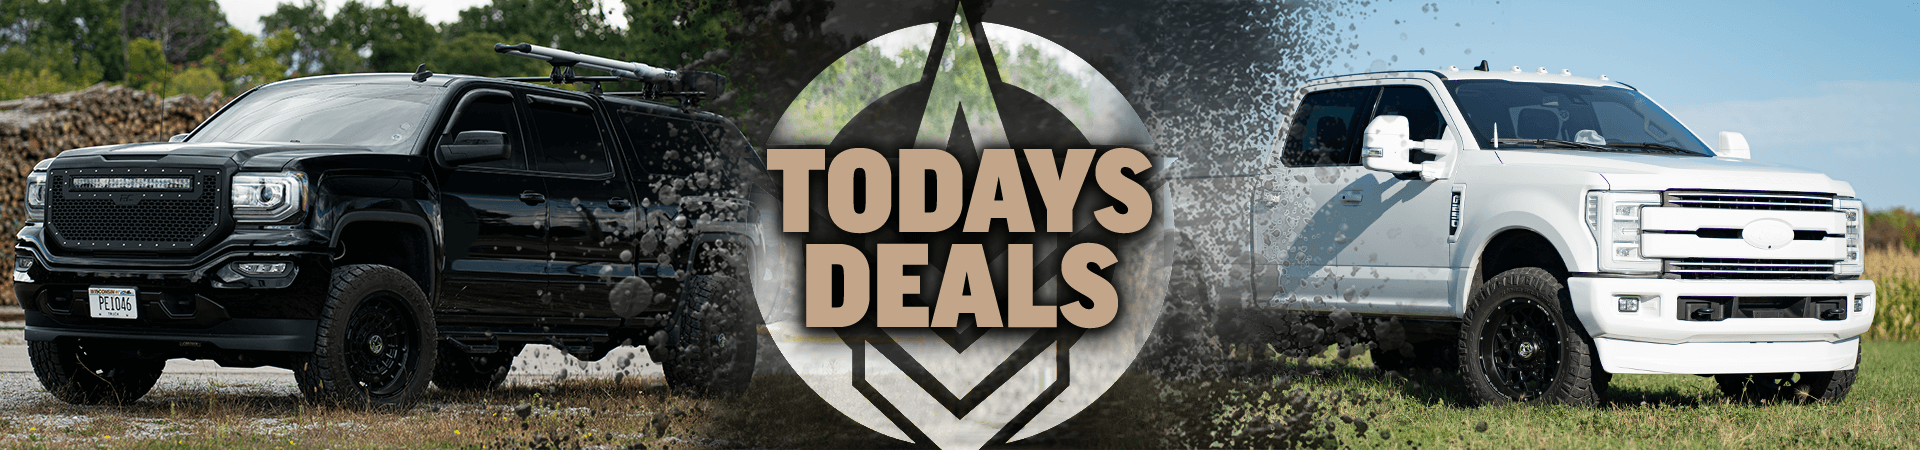 Anthem Off-Road Today's Deals